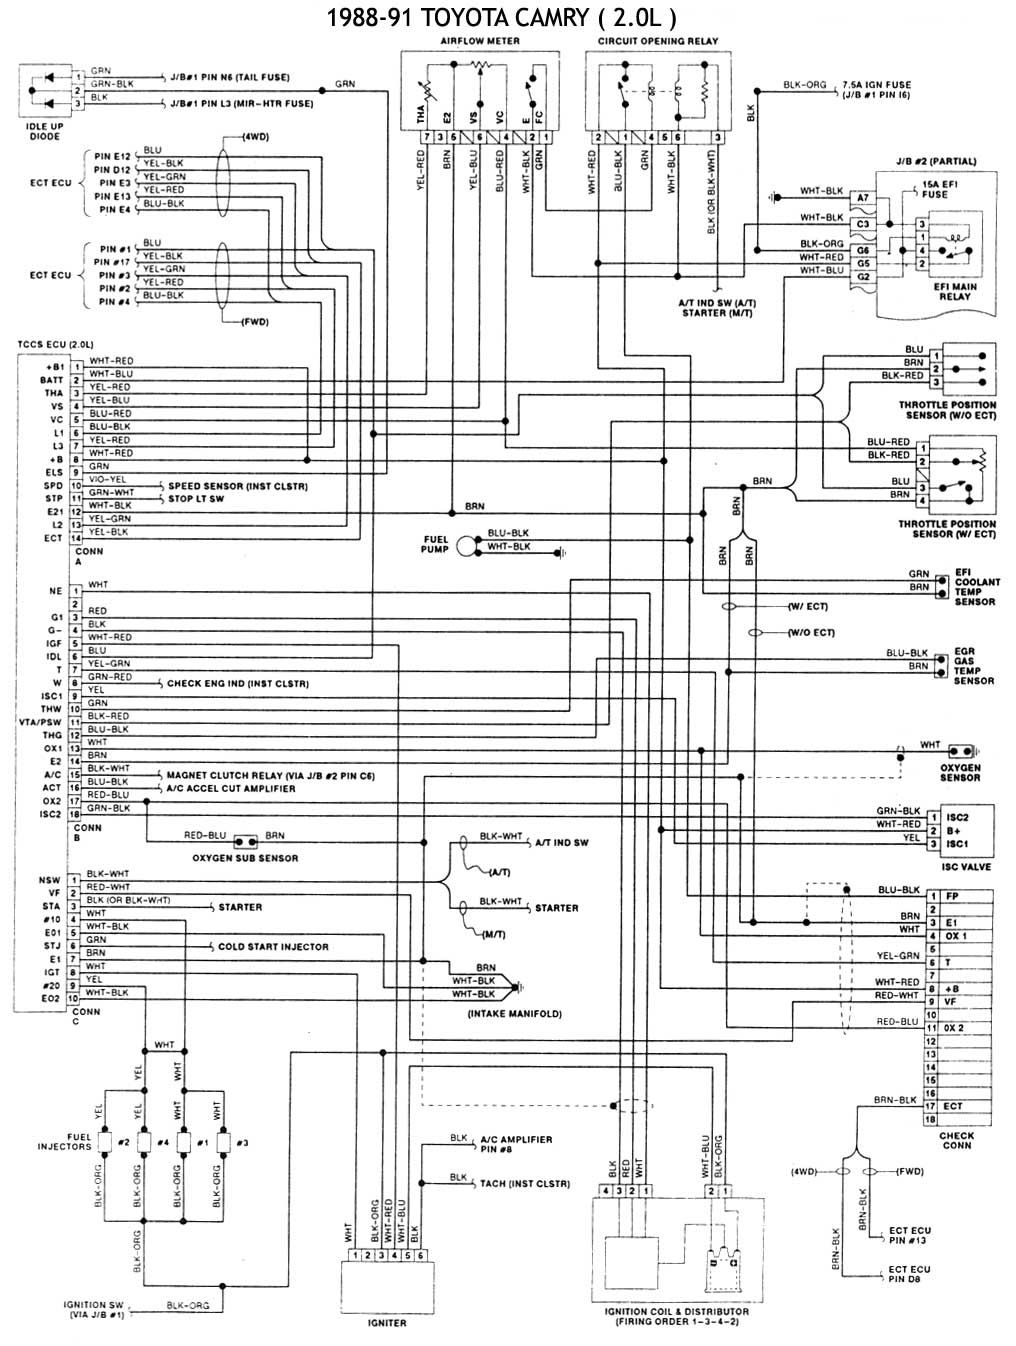 Diagrama De Motor Toyota Camry In 2020 Toyota Camry Automotive Electrical Automotive Repair